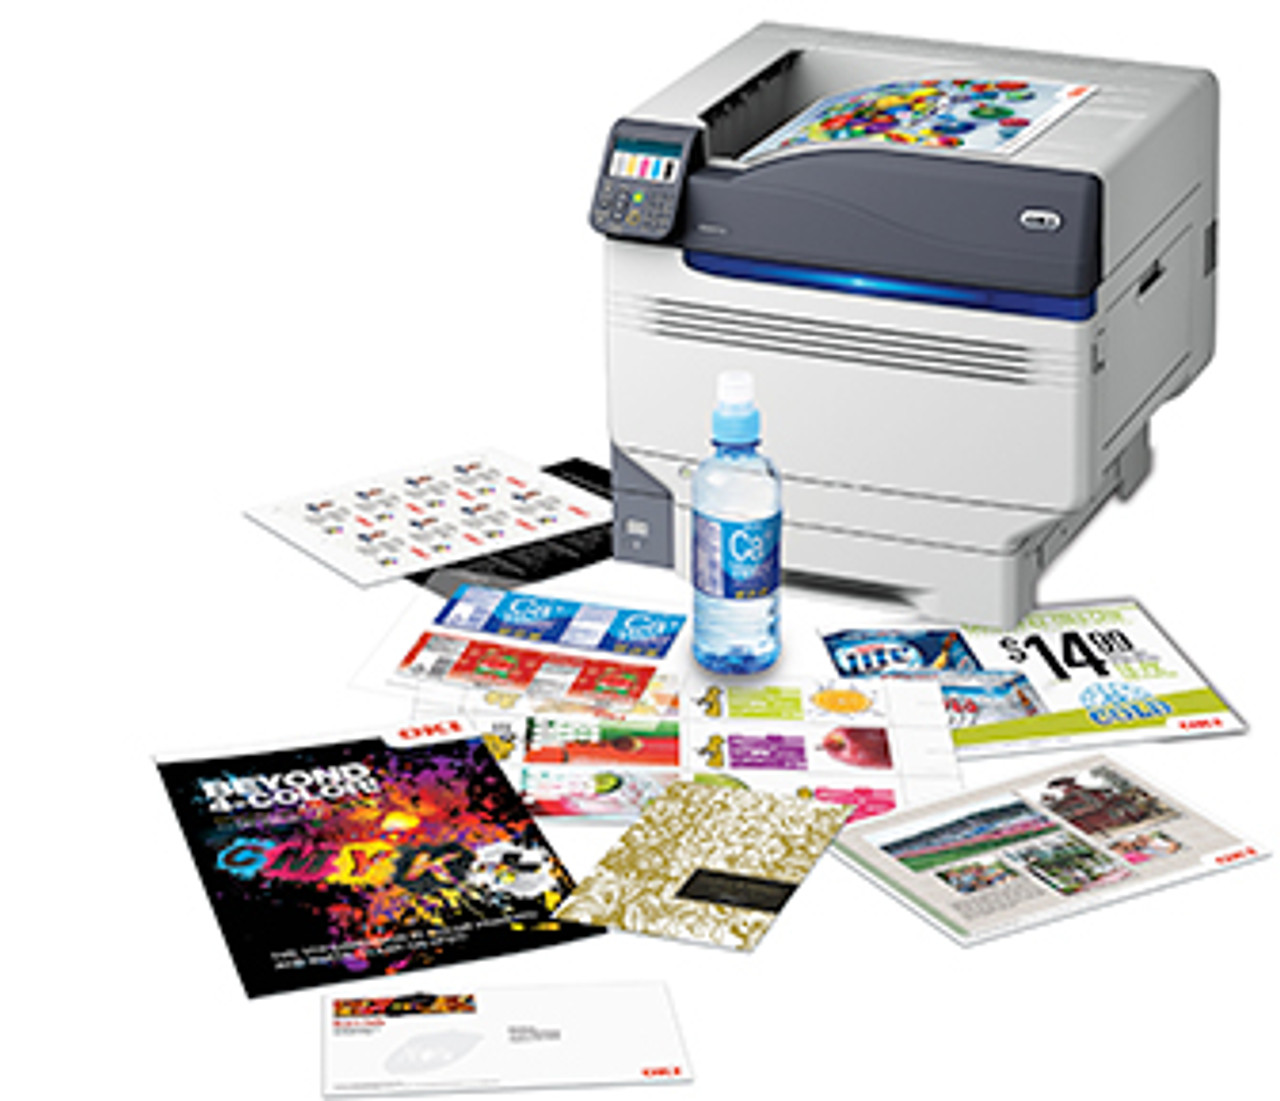 OKI C941e Digital LED Printer